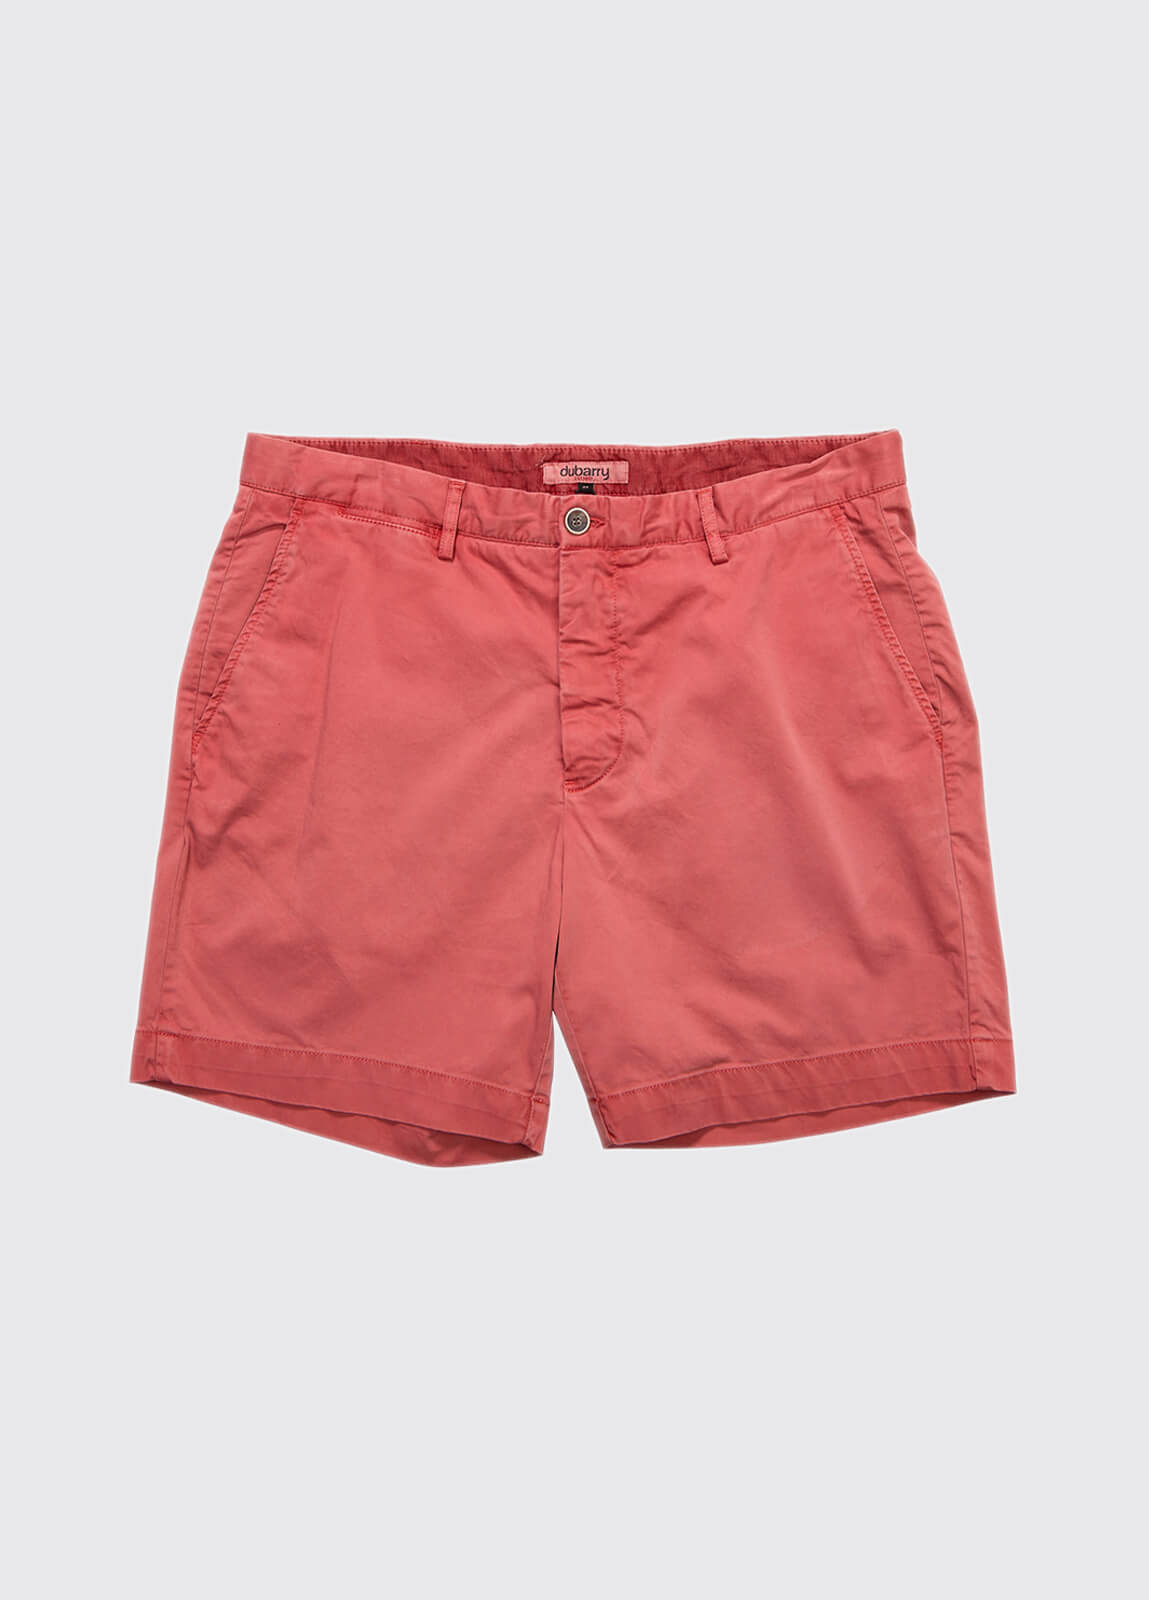 Glandore Men's Shorts - Red